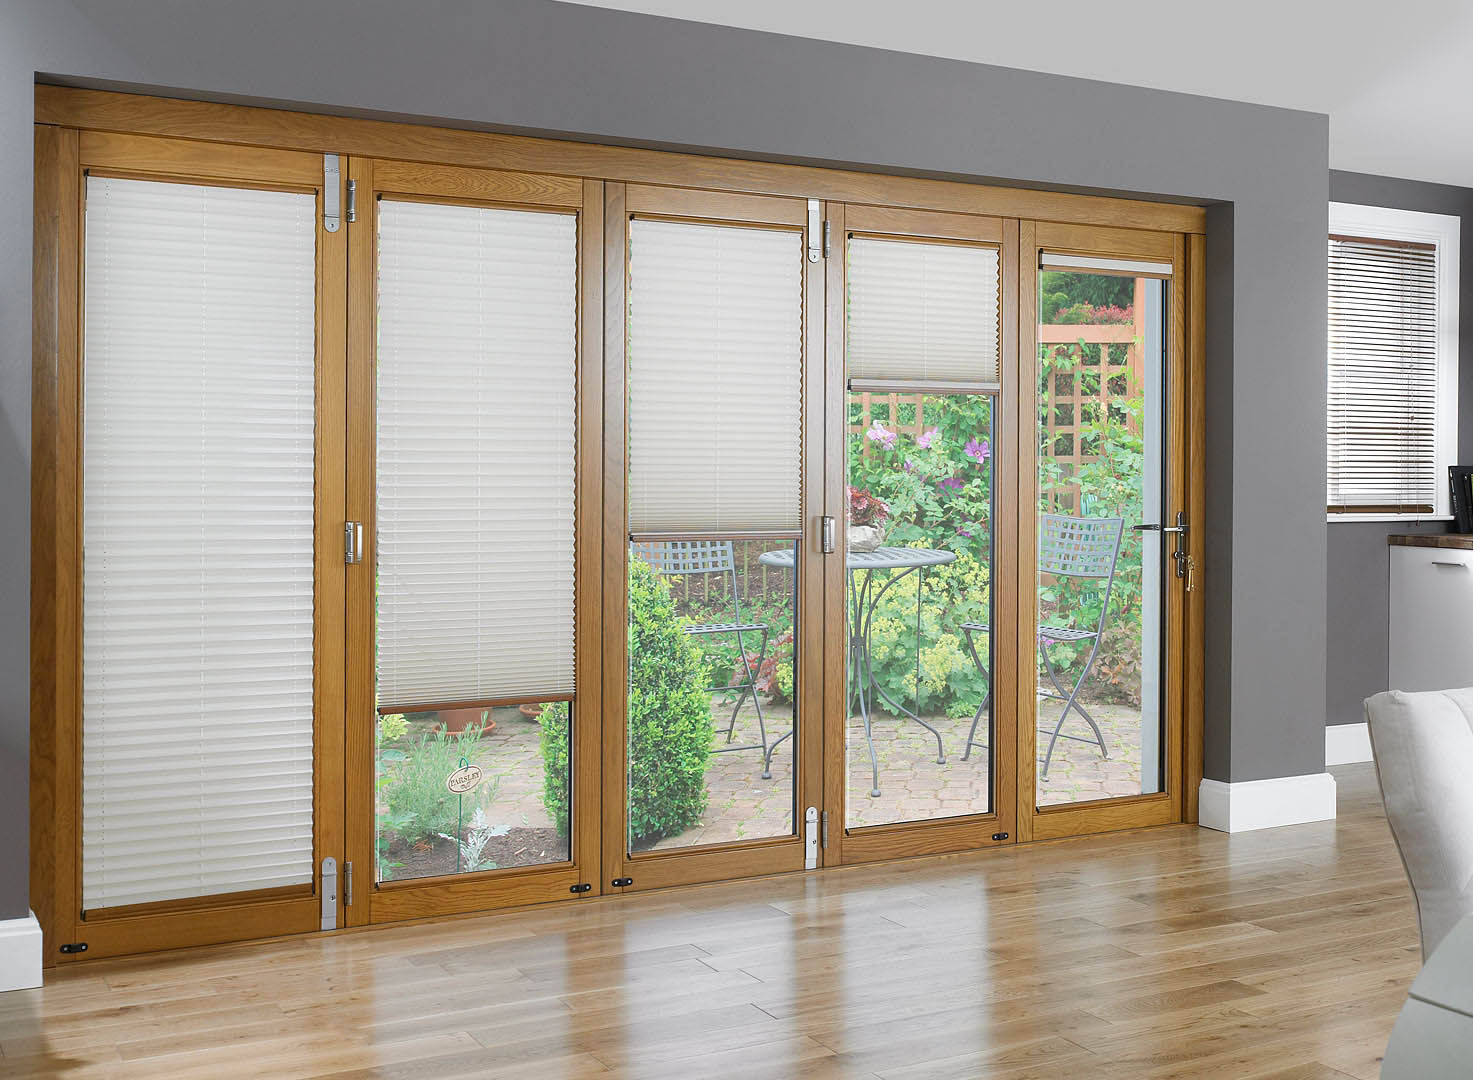 1080 #6B4821 Blinds For French Doors For The Best Possible Experience  picture/photo Blind For French Doors 291473